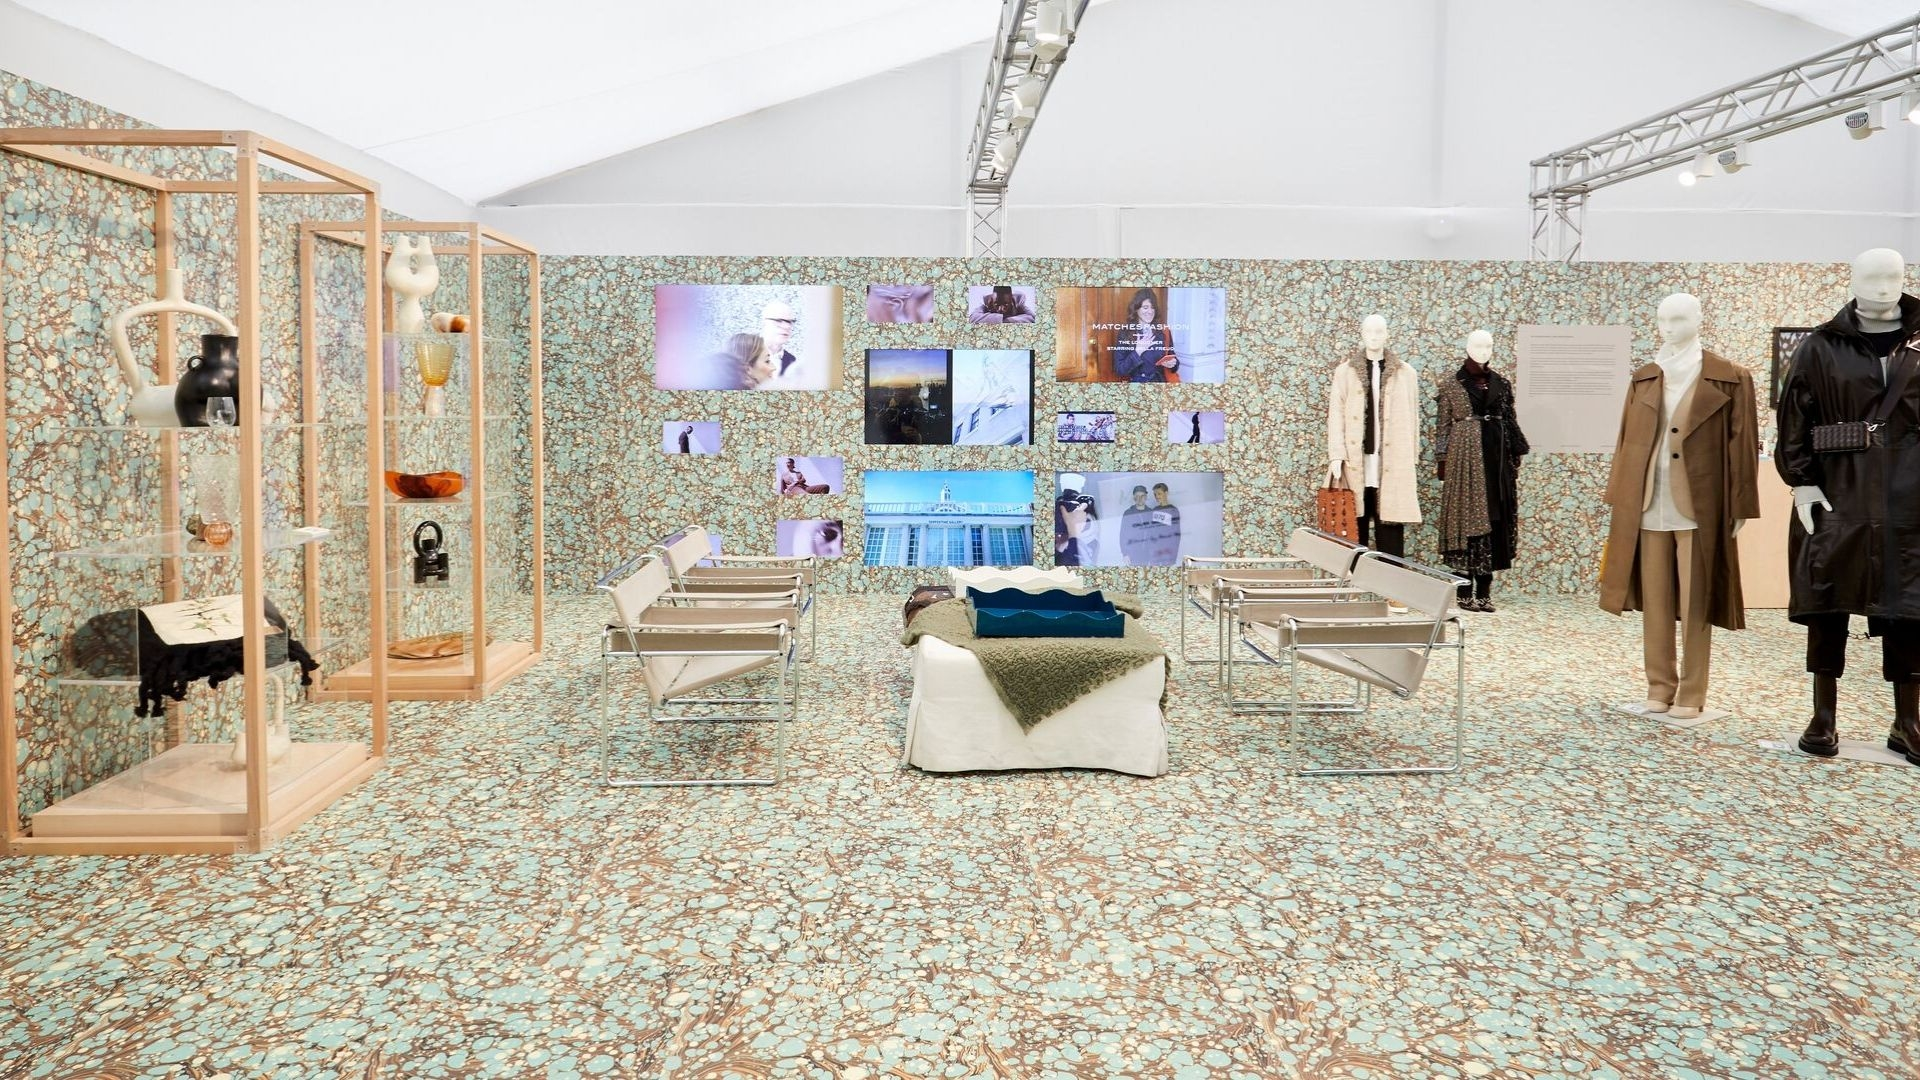 MATCHESFASHION's First Collaboration with Frieze London Marries Fashion, Art, Design and Human Rights